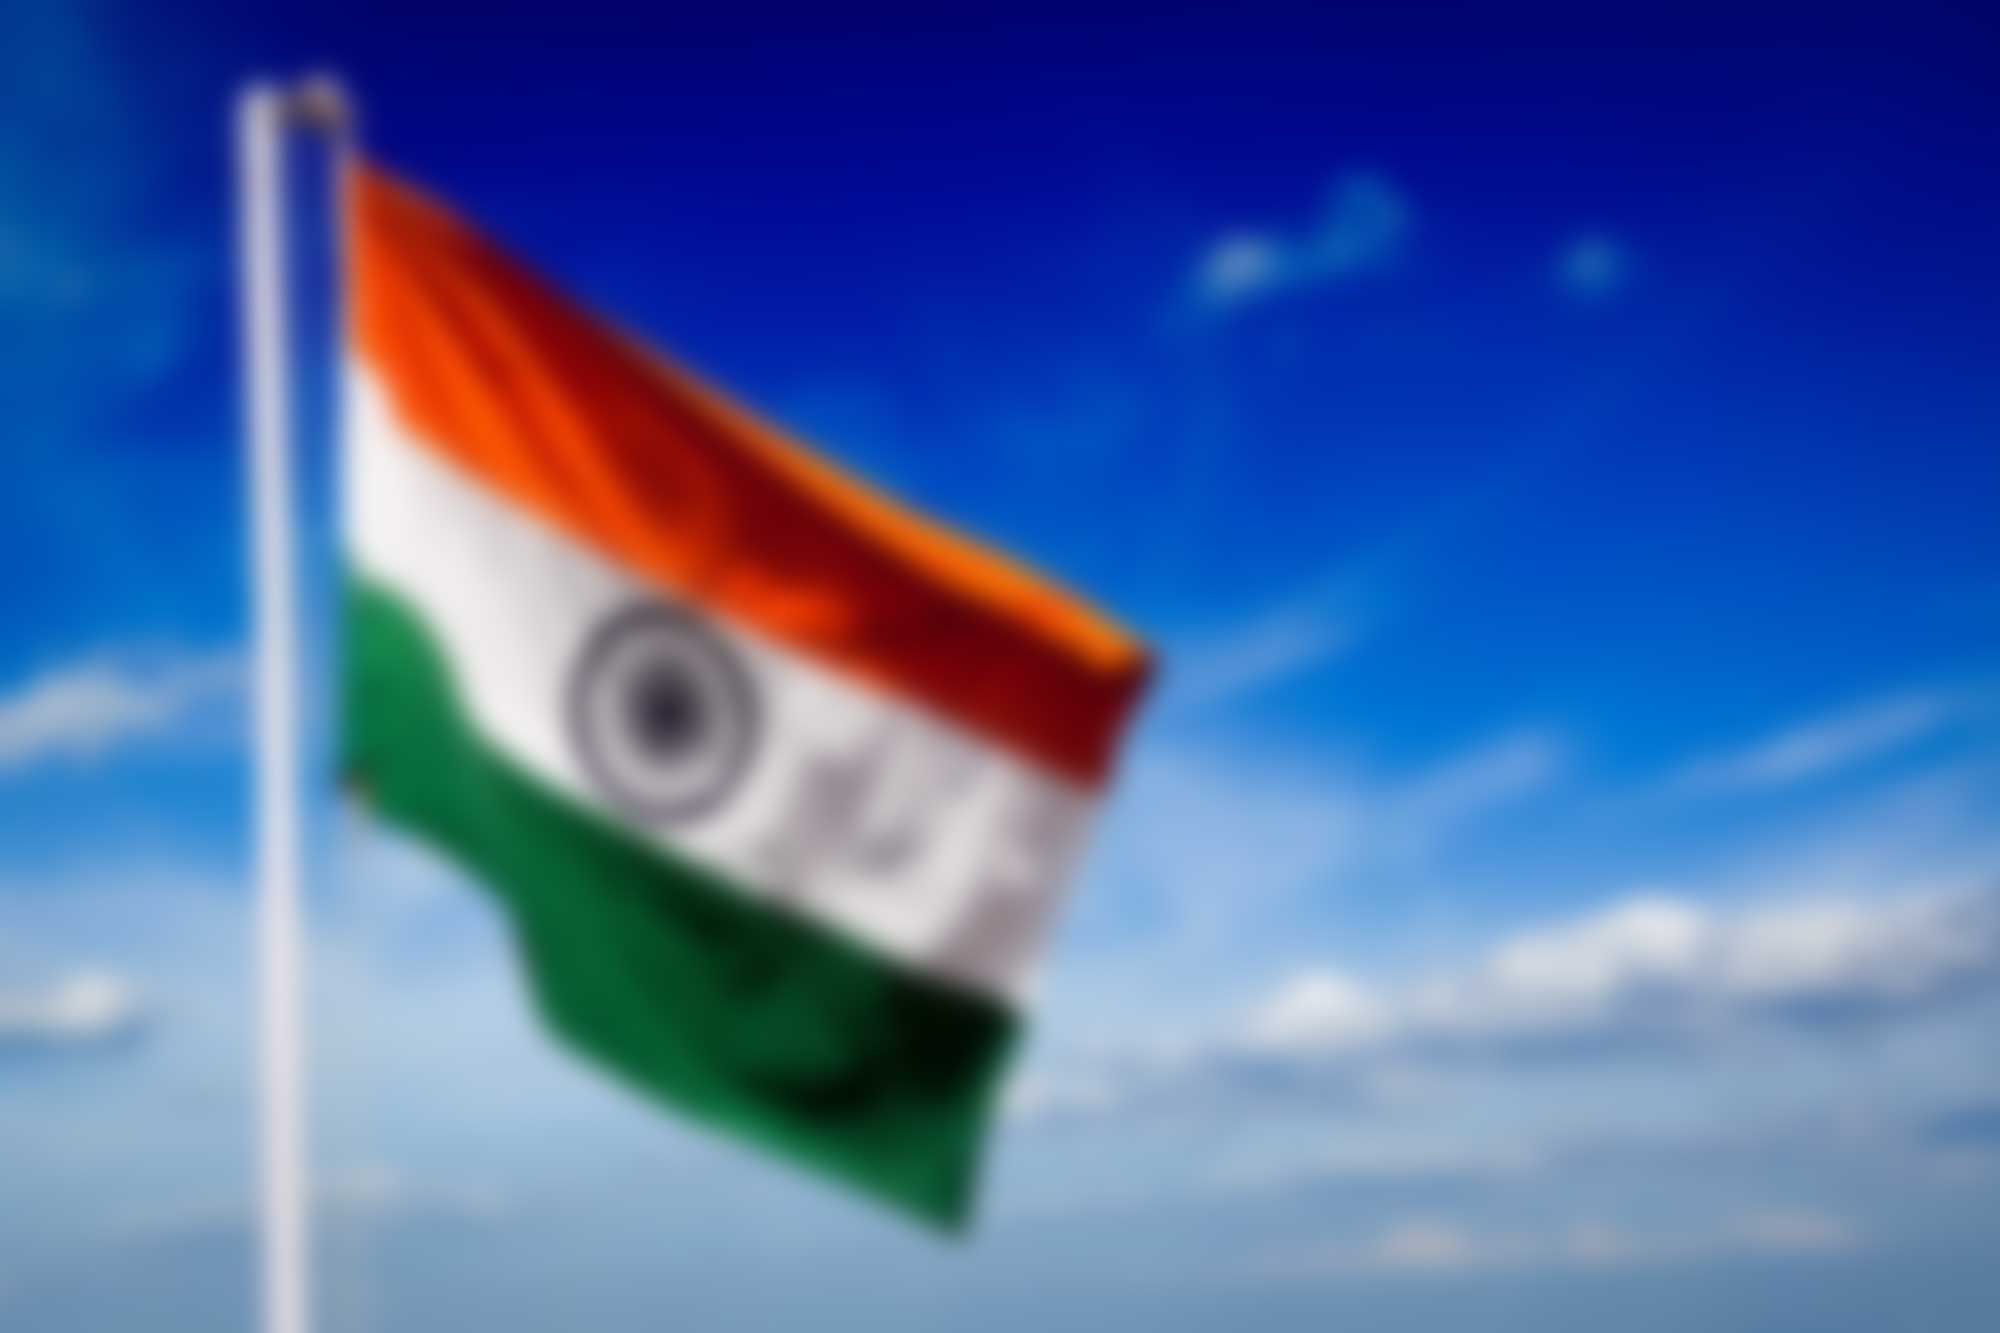 Indian Flag Photos Hd Wallpapers Download Free À¤­ À¤°à¤¤ À¤ª À¤ªà¤² À¤¸ À¤¸ À¤¨